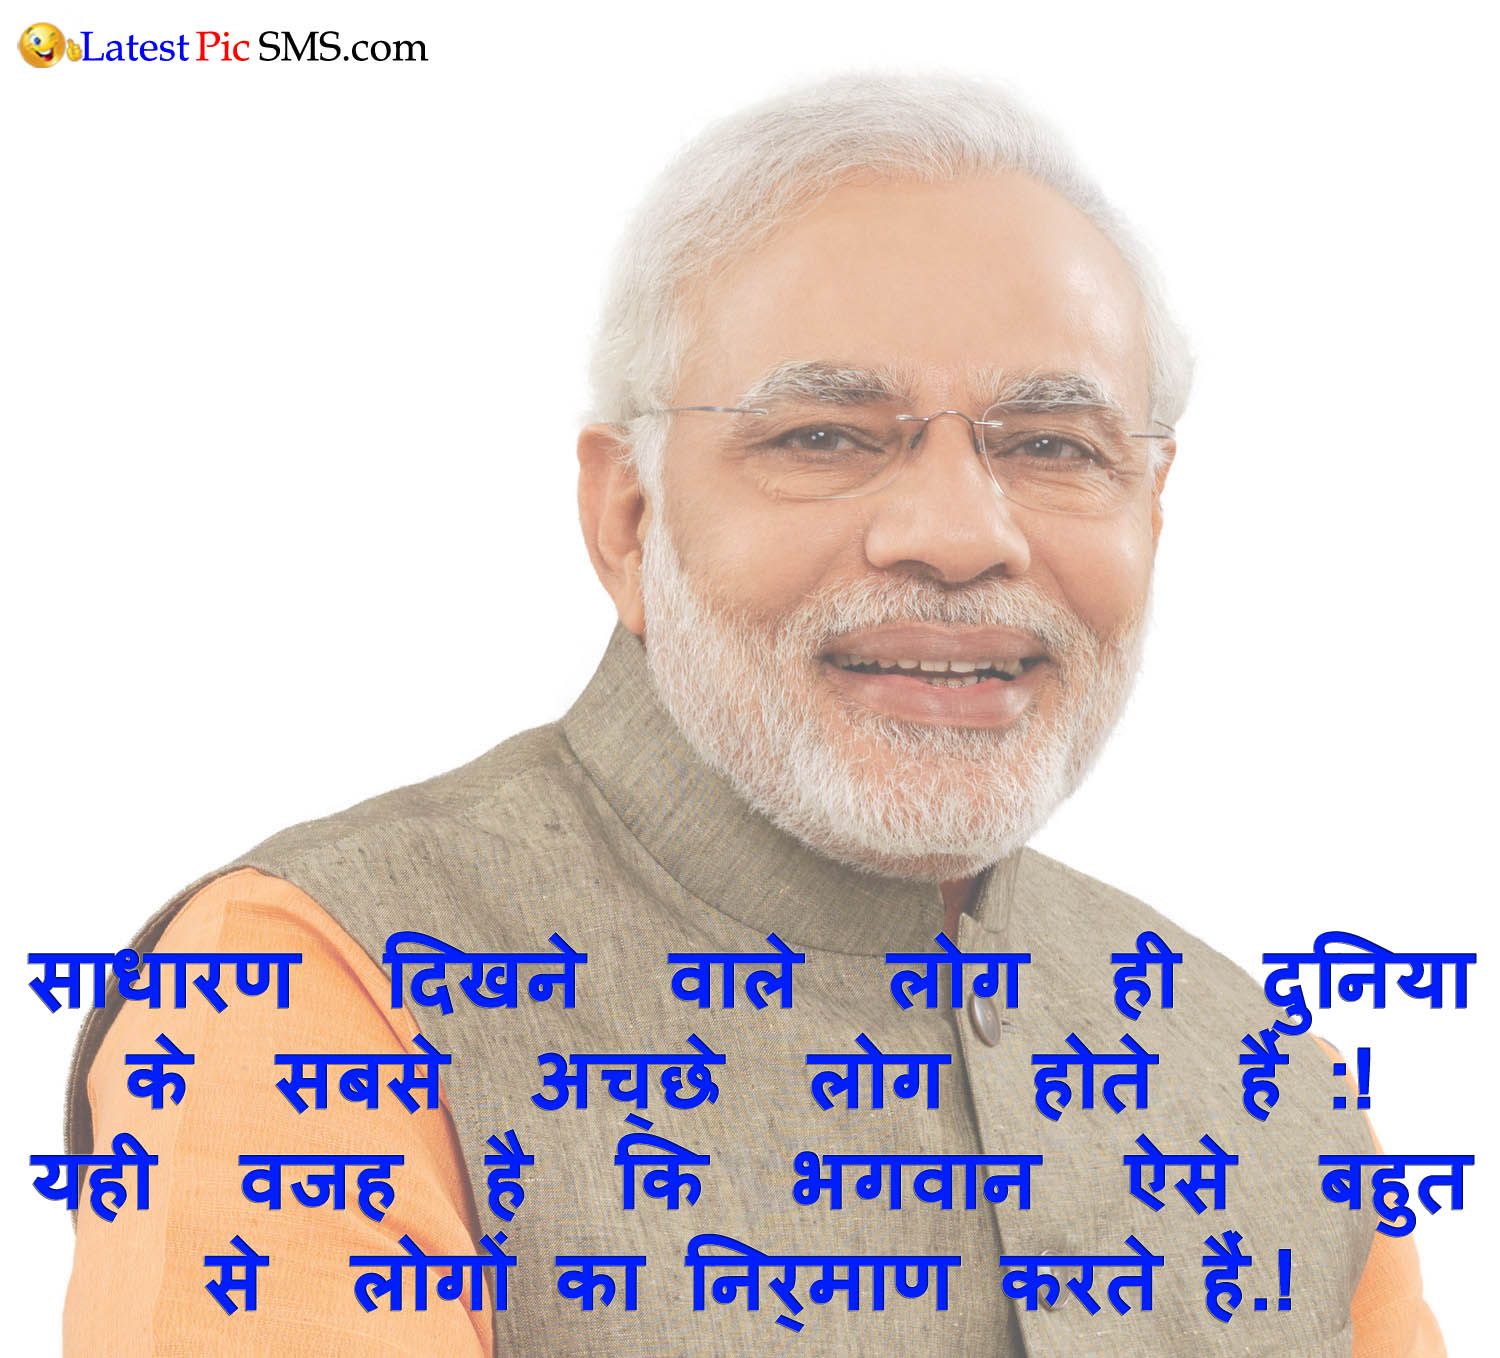 Narendra modi Thoght like PMO